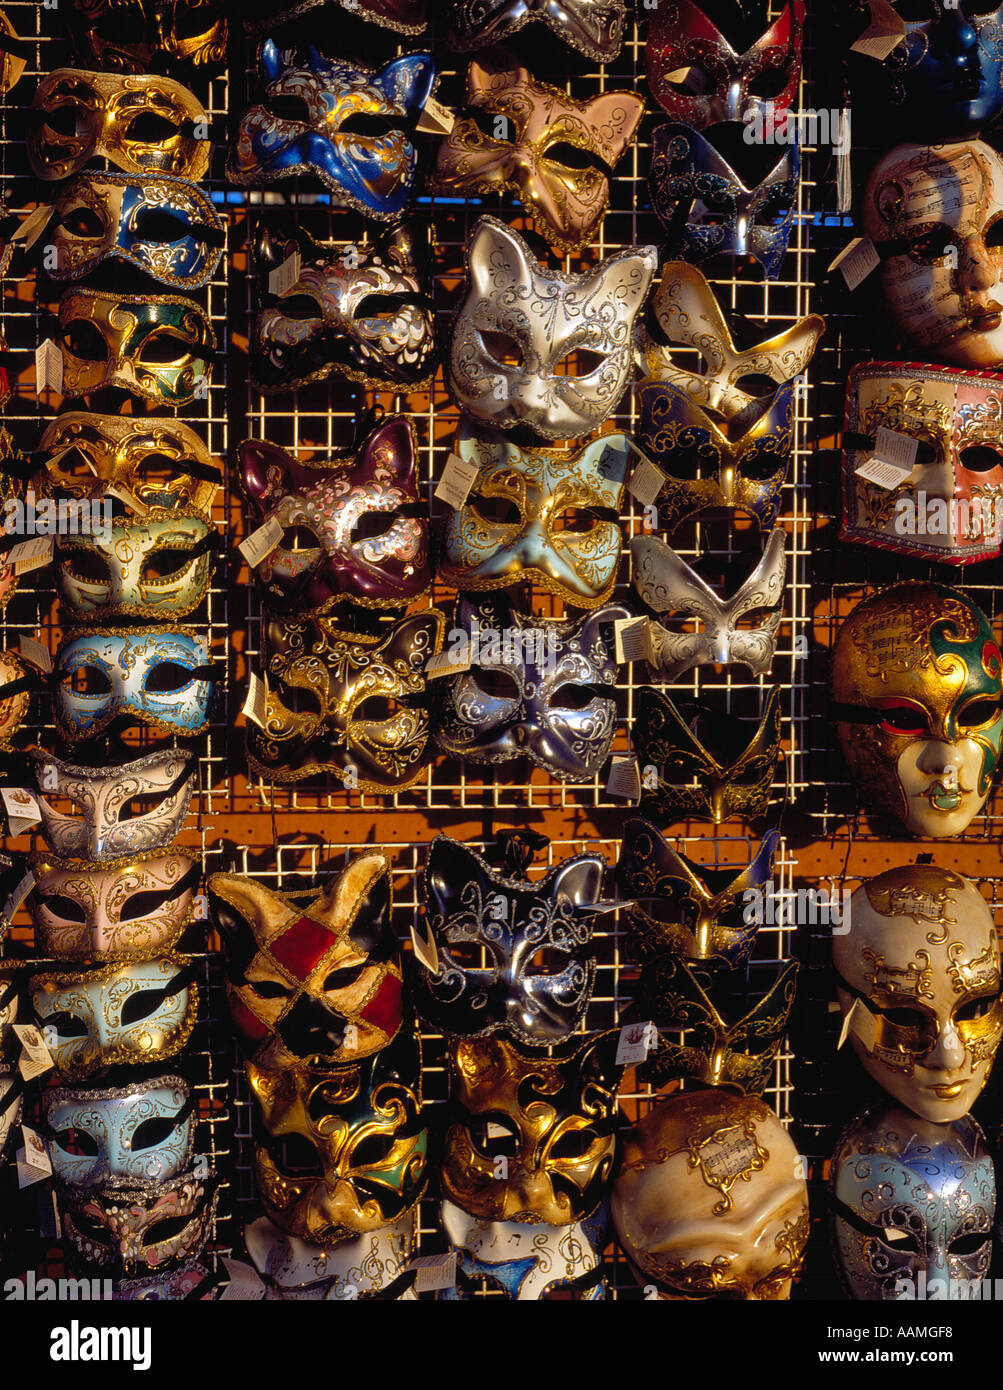 masks for sale in Venice Italy Europe. Photo by Willy Matheisl - Stock Image